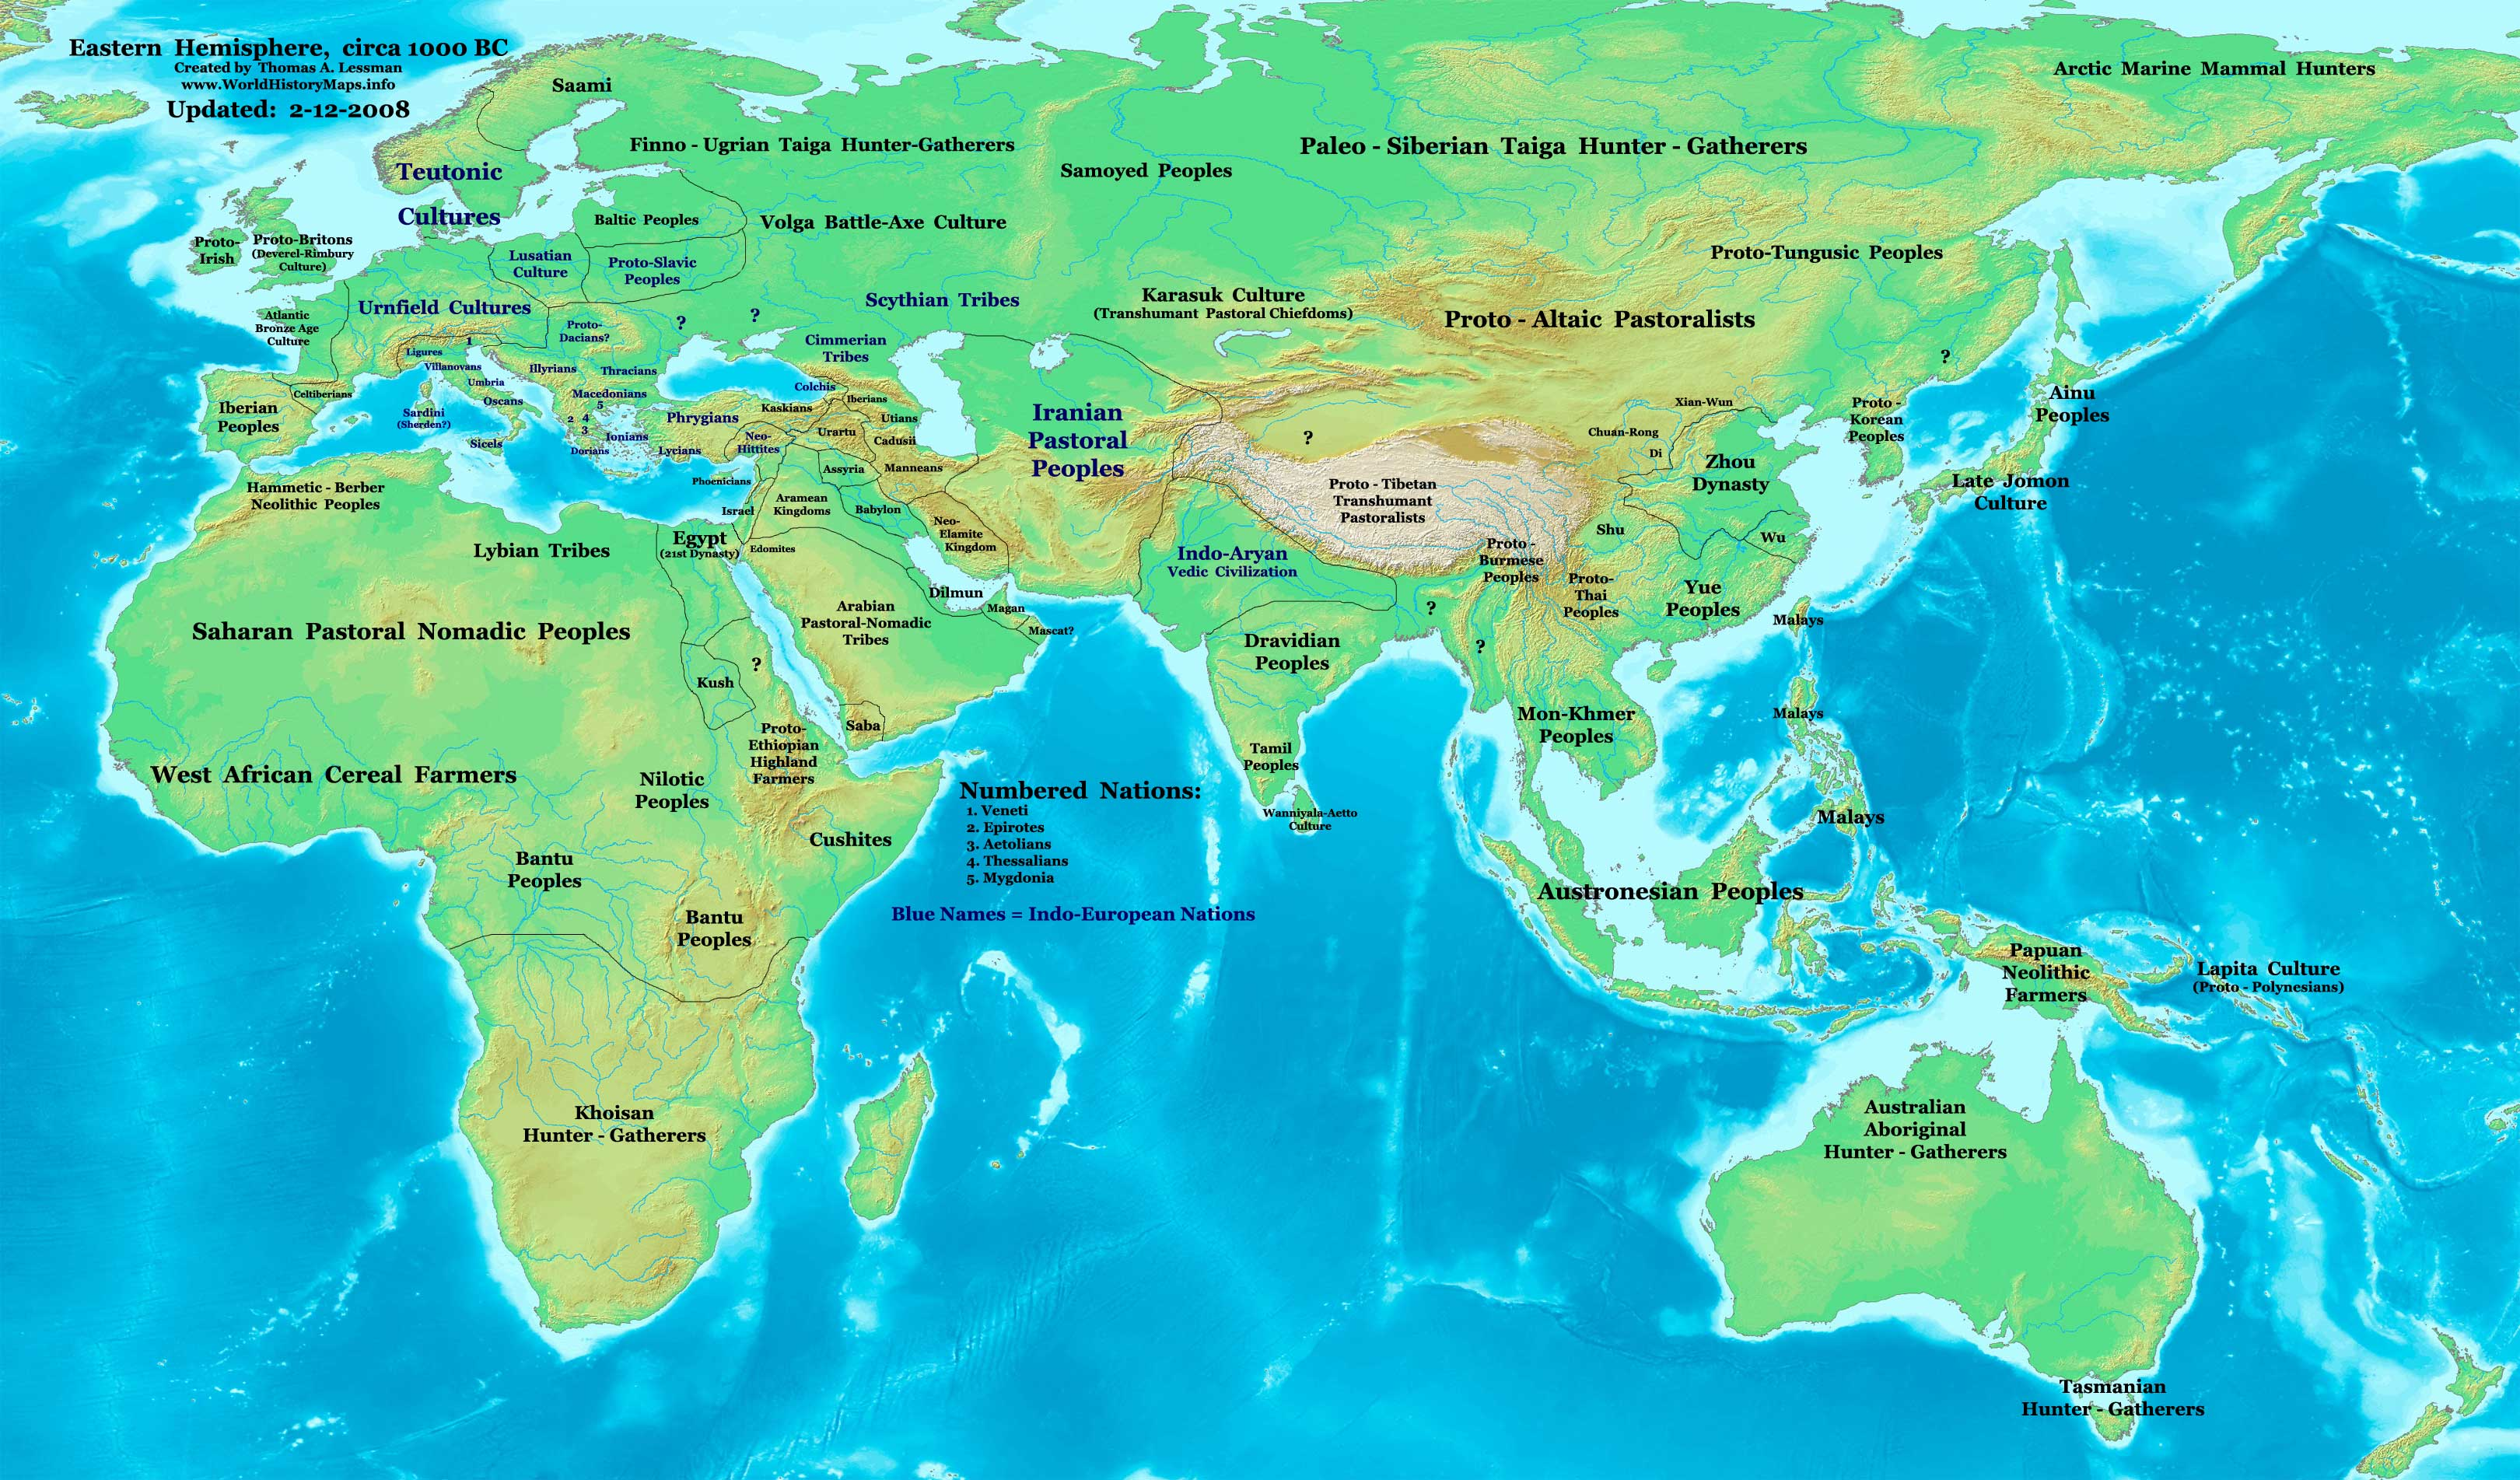 https://i0.wp.com/www.worldhistorymaps.info/images/East-Hem_1000bc.jpg